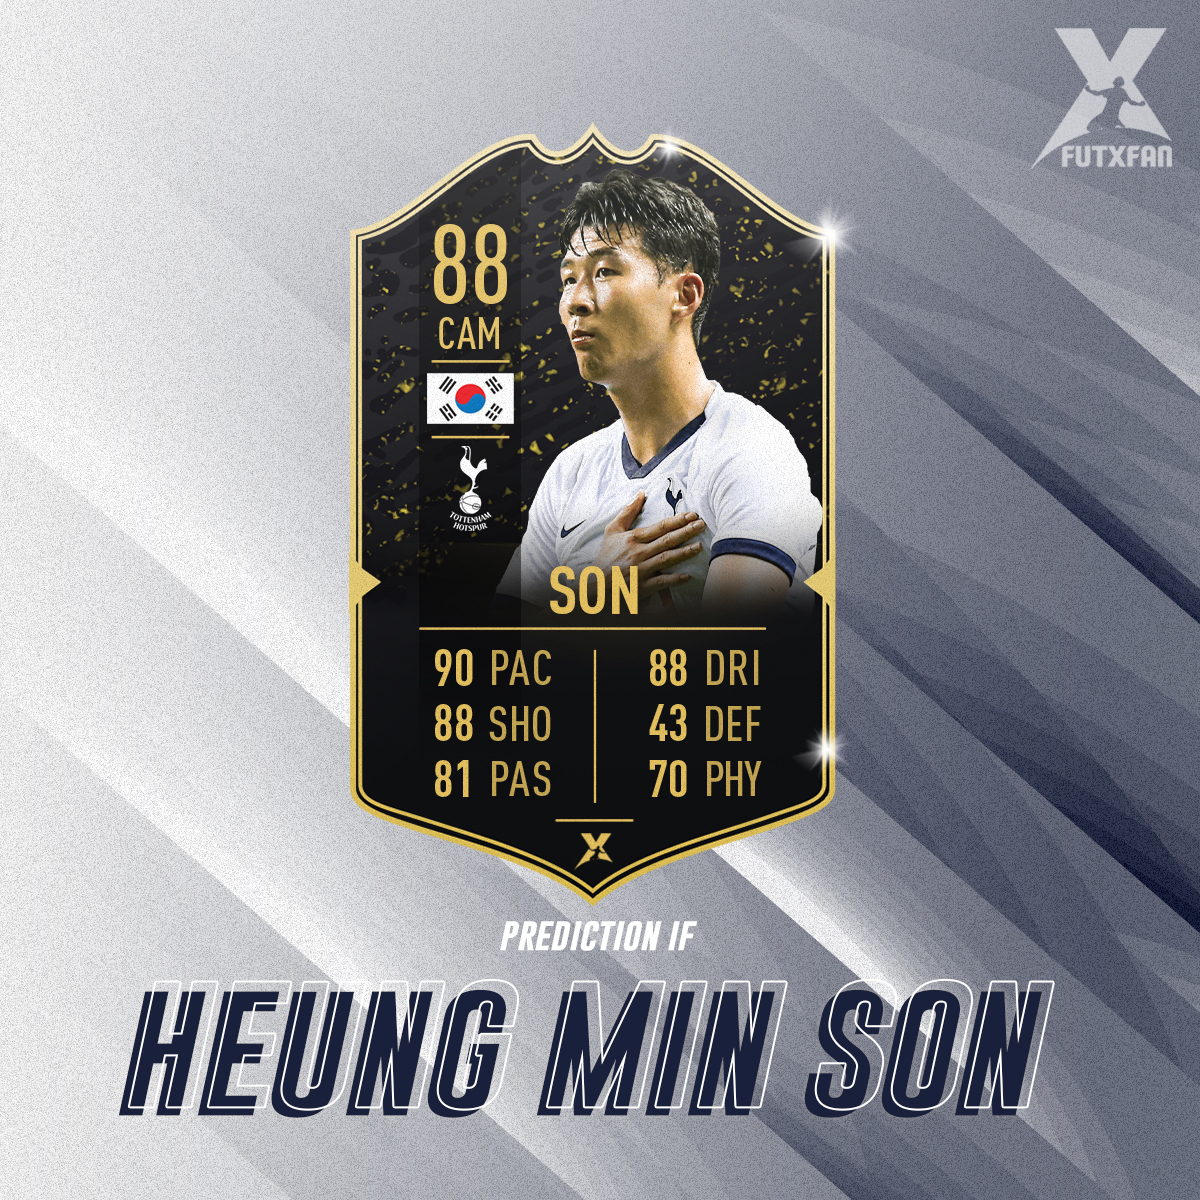 Heung Min Son Prediction IF